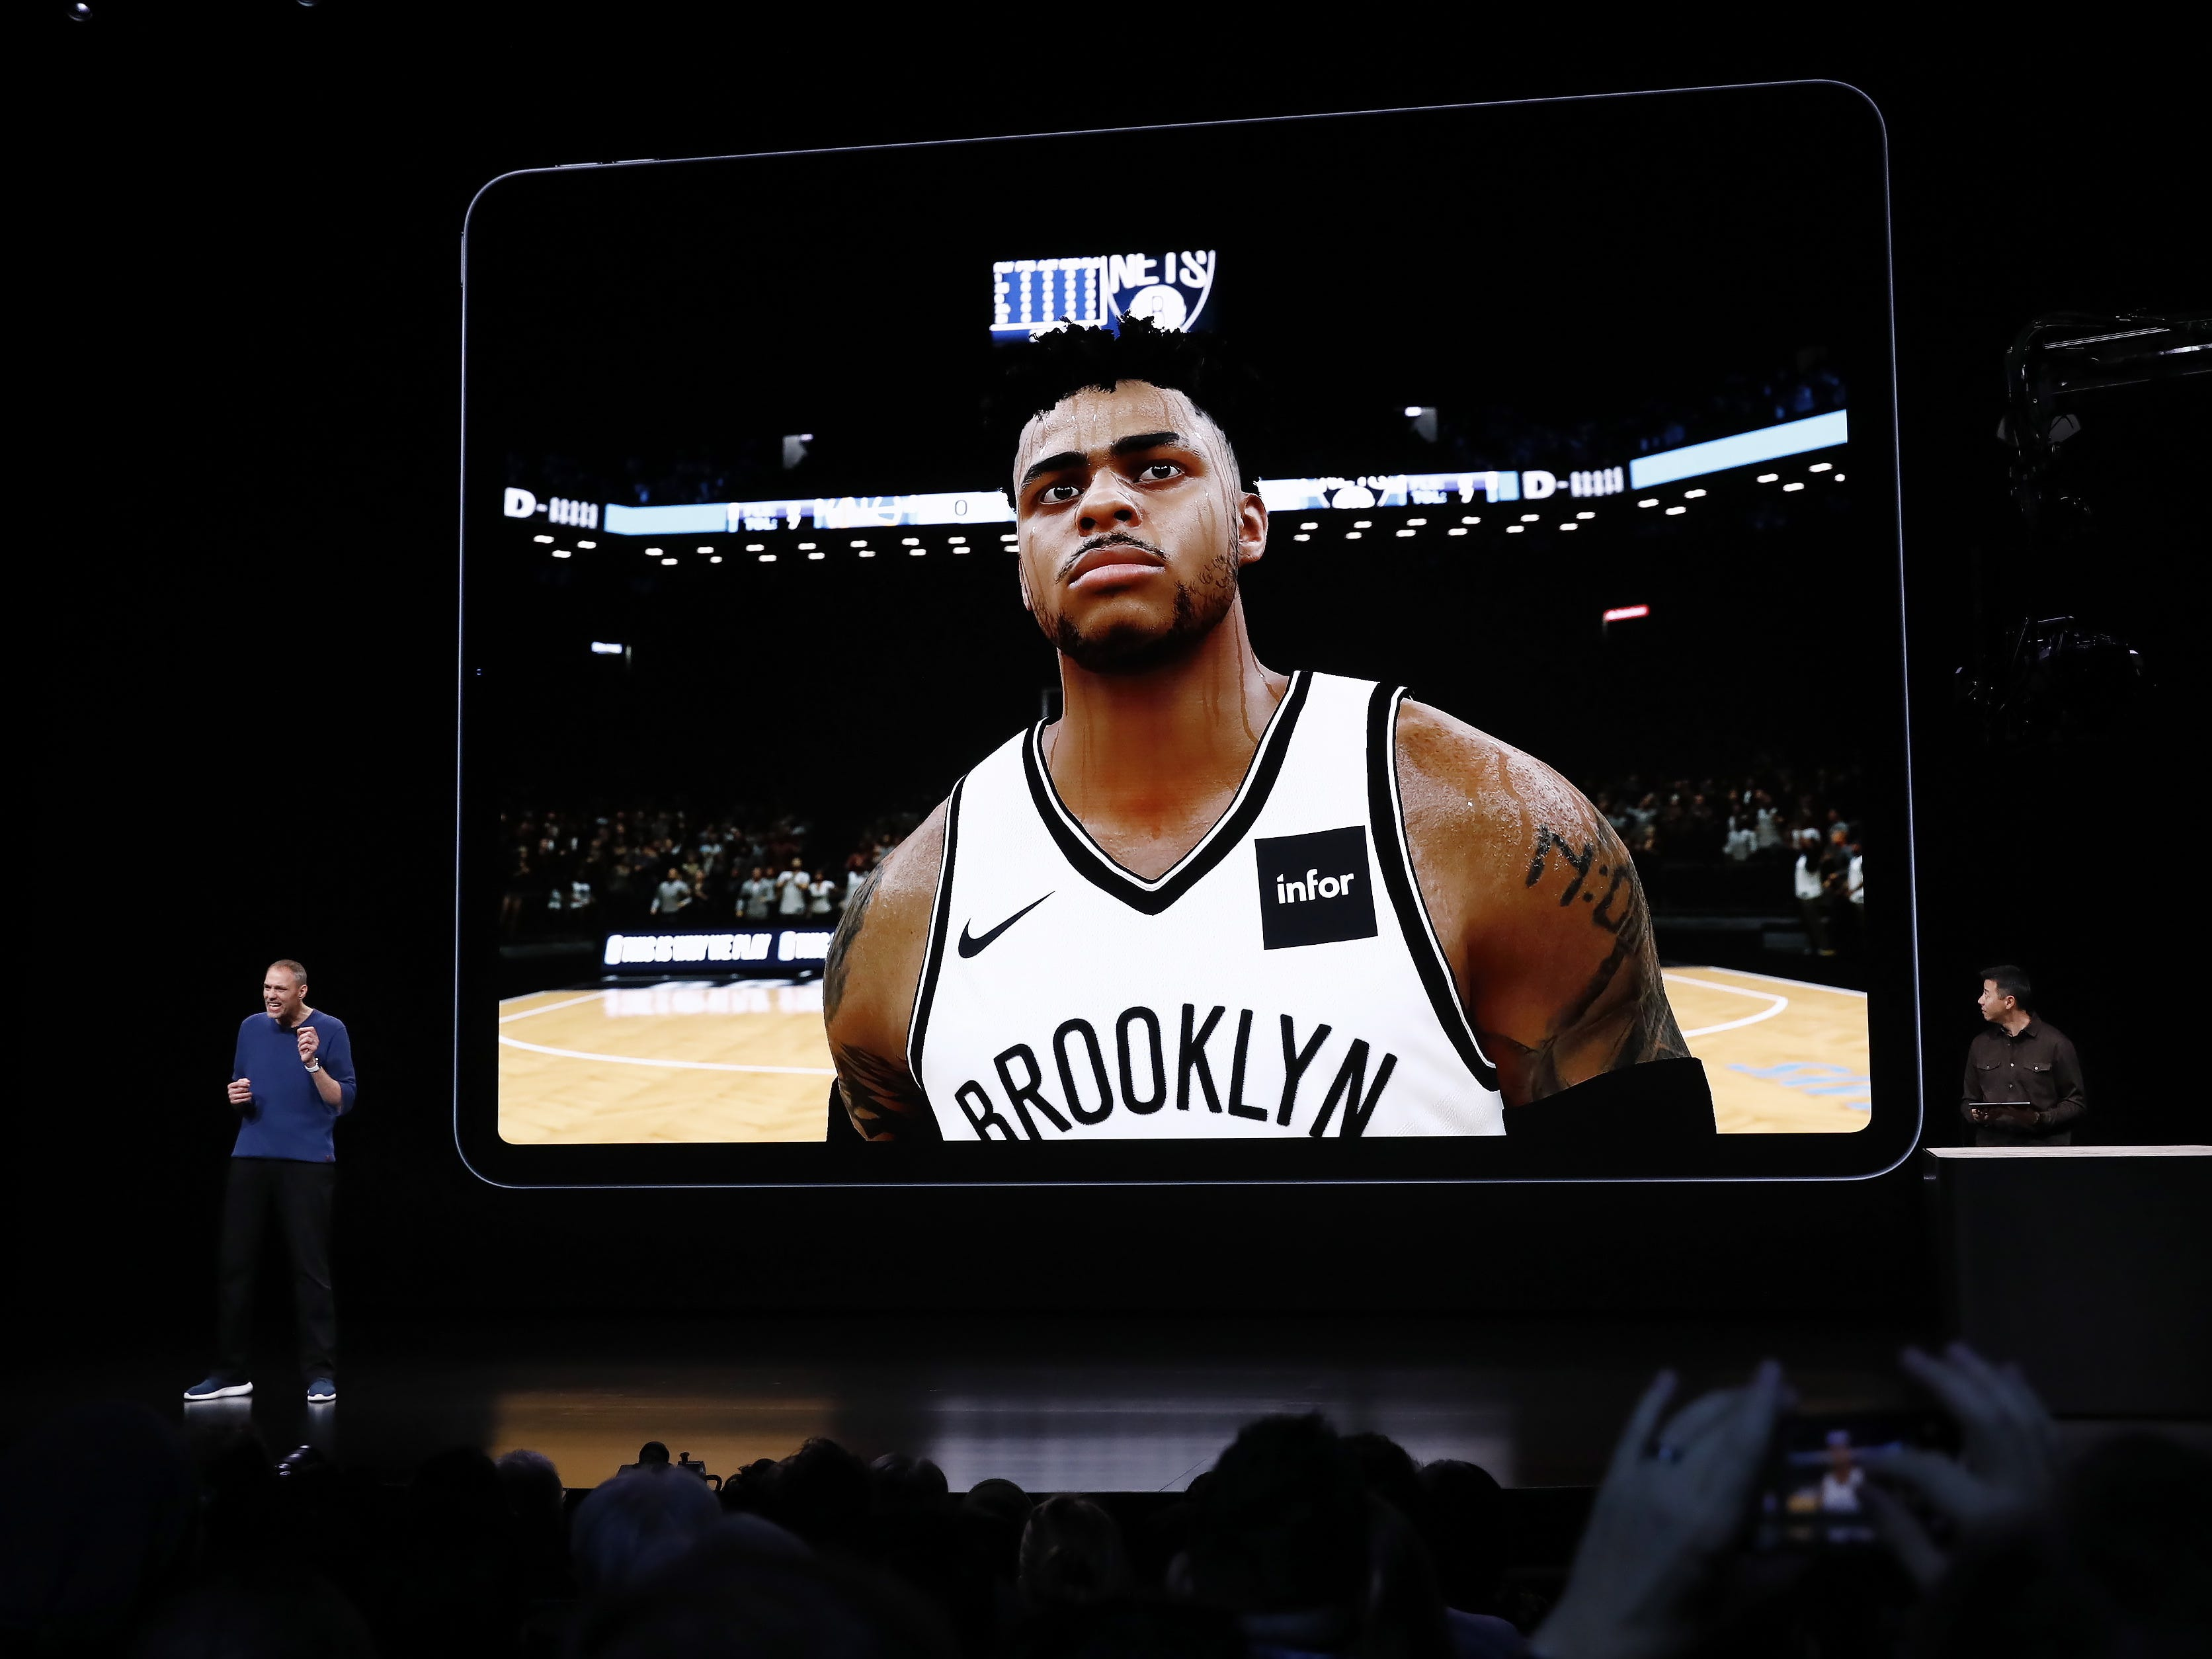 President of 2K Sports, Greg Thomas, speaks about the new iPad Pro during an Apple special event at the Howard Gilman Opera House at the Brooklyn Academy of Music before the start of an Apple event in New York, Tuesday, Oct. 30, 2018.